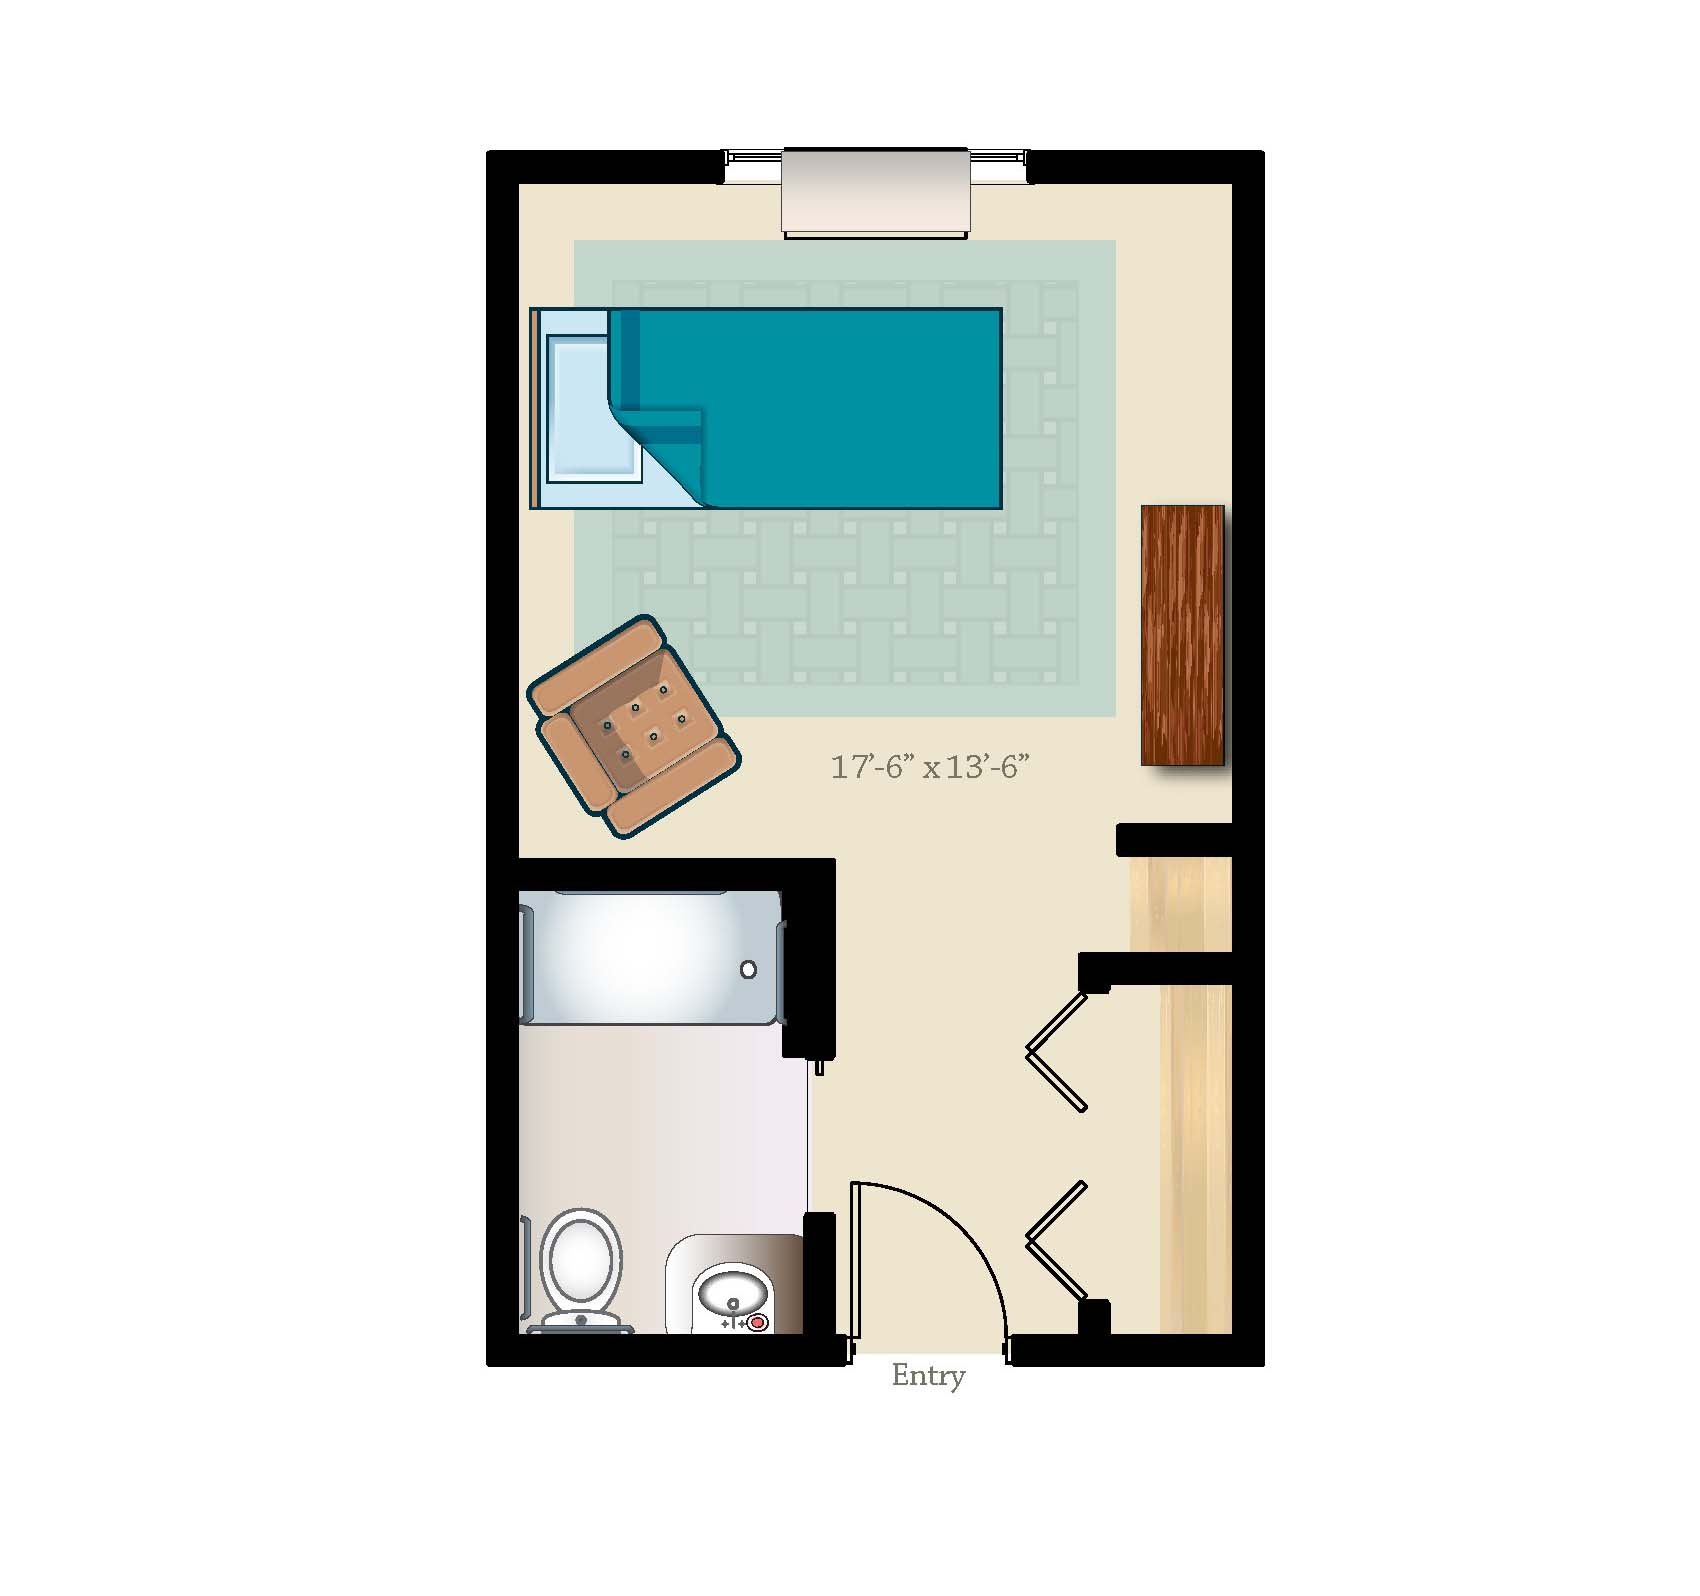 Private memory care suite layout 341 square feet